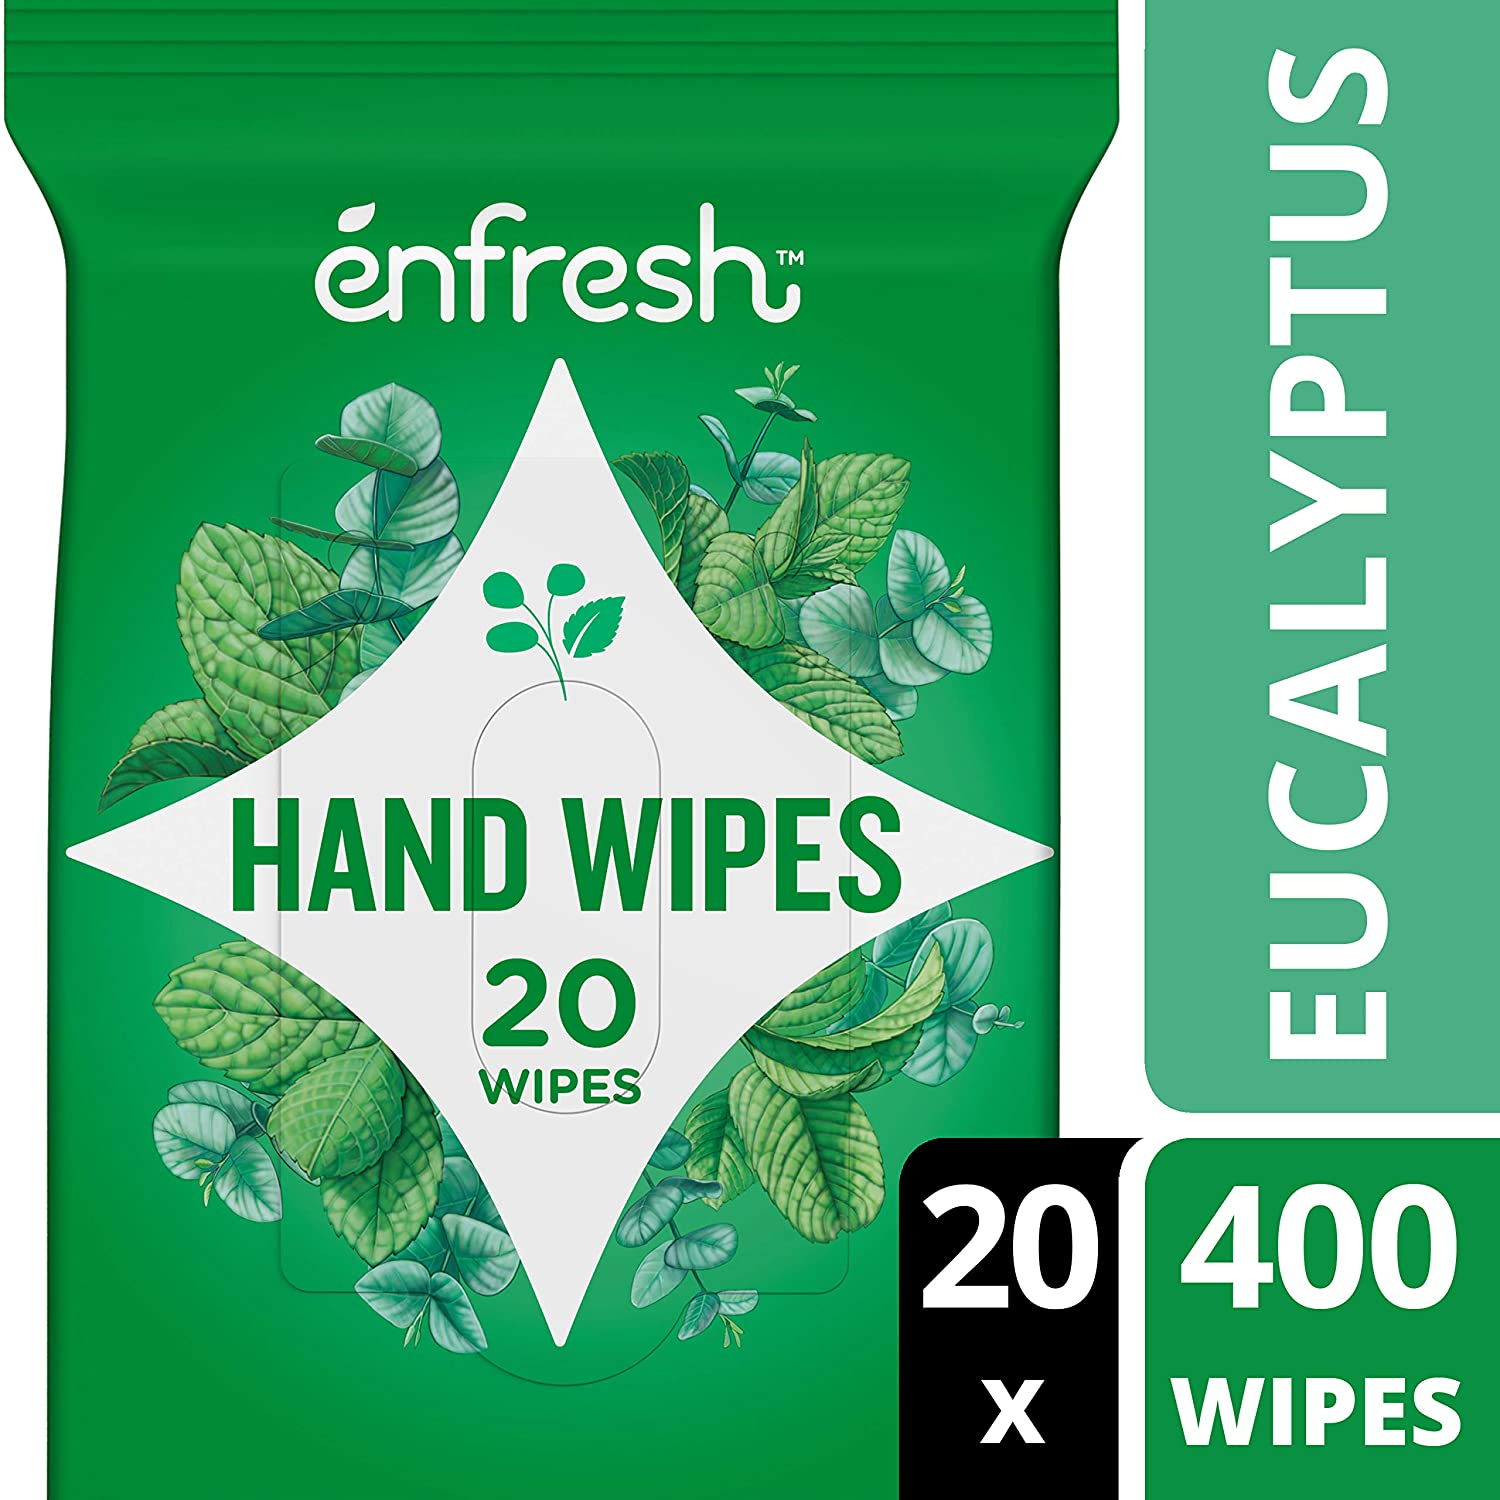 Enfresh refreshing grapefruit naturally derived hand wipes